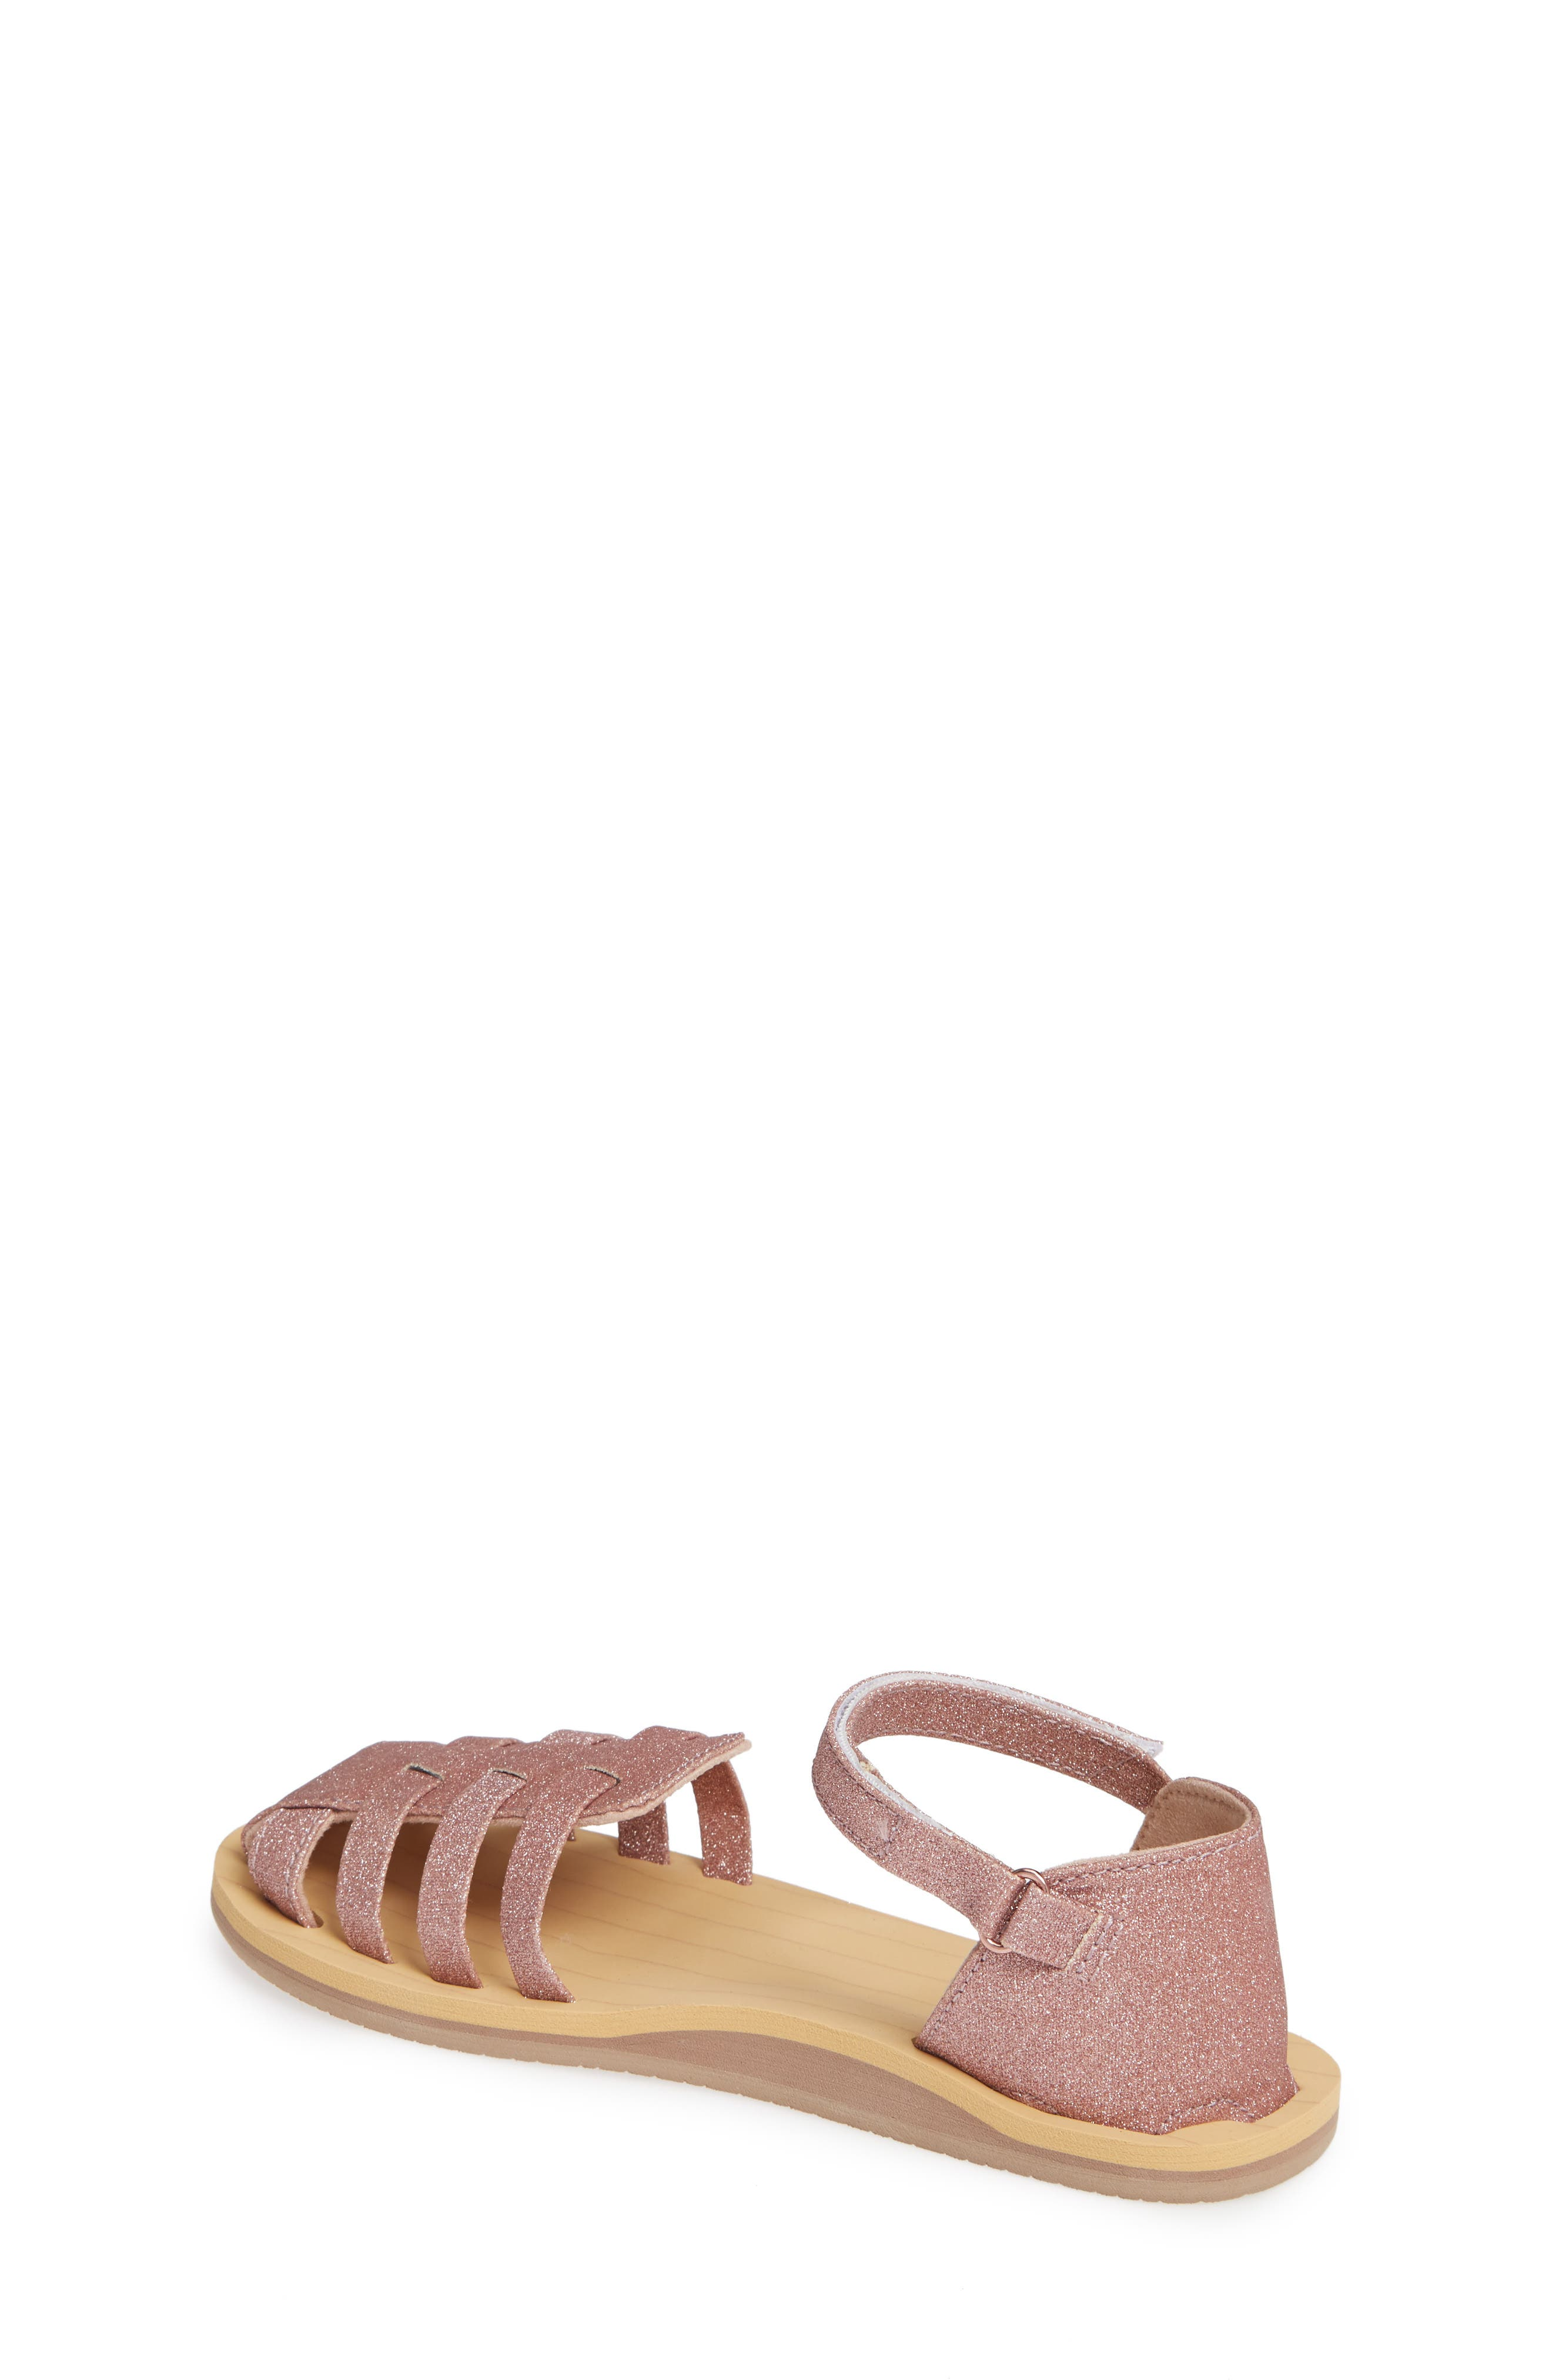 REEF, Little Reef Prep Glitter Fisherman Sandal, Alternate thumbnail 2, color, ROSE